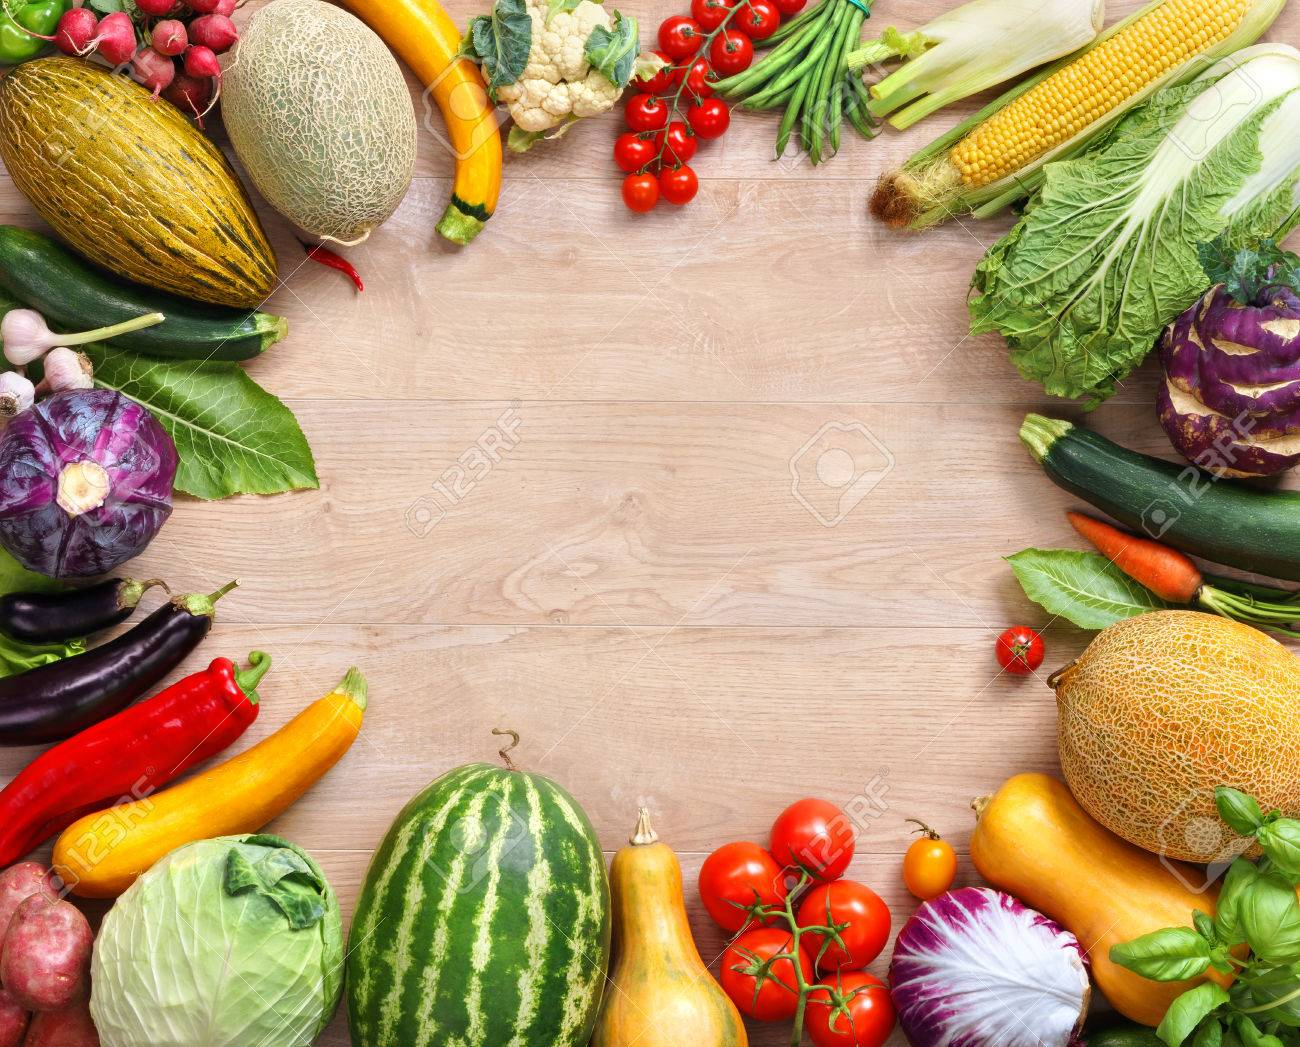 Healthy Food On Wooden Table Top View With Copy Space High Res Stock Photo Picture And Royalty Free Image Image 52849015